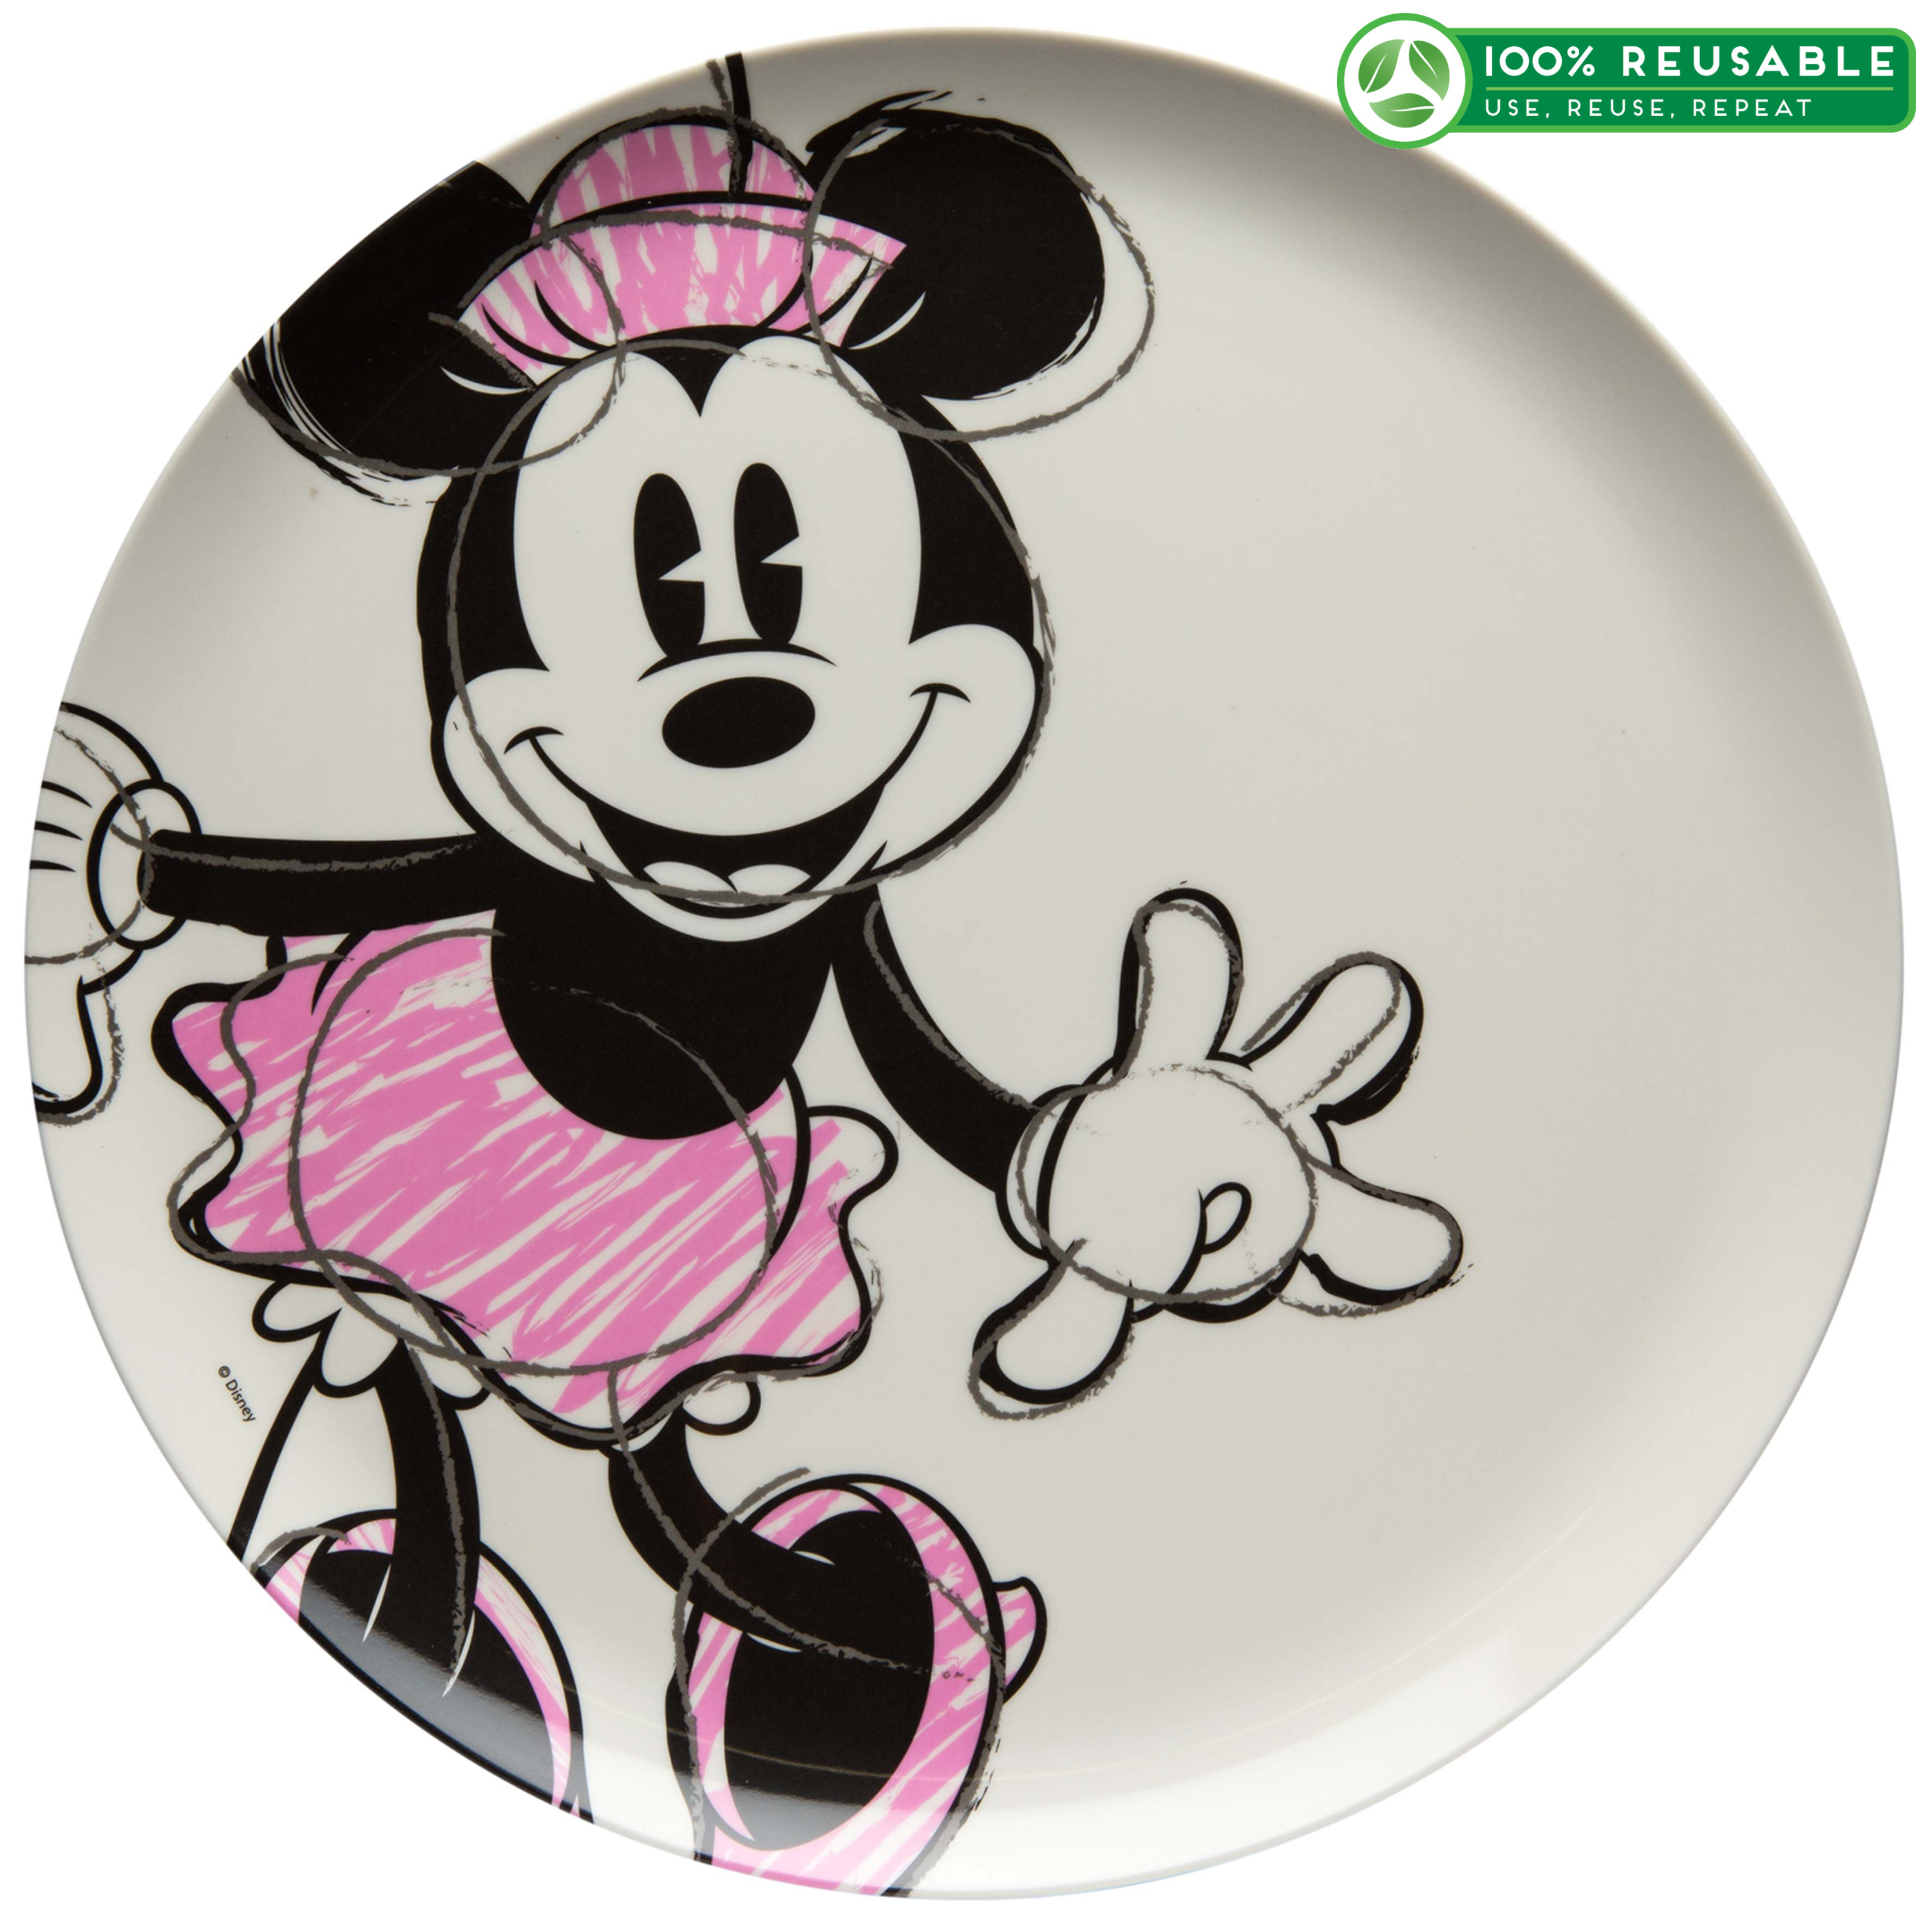 Disney Kid's Plate, Minnie Mouse slideshow image 1